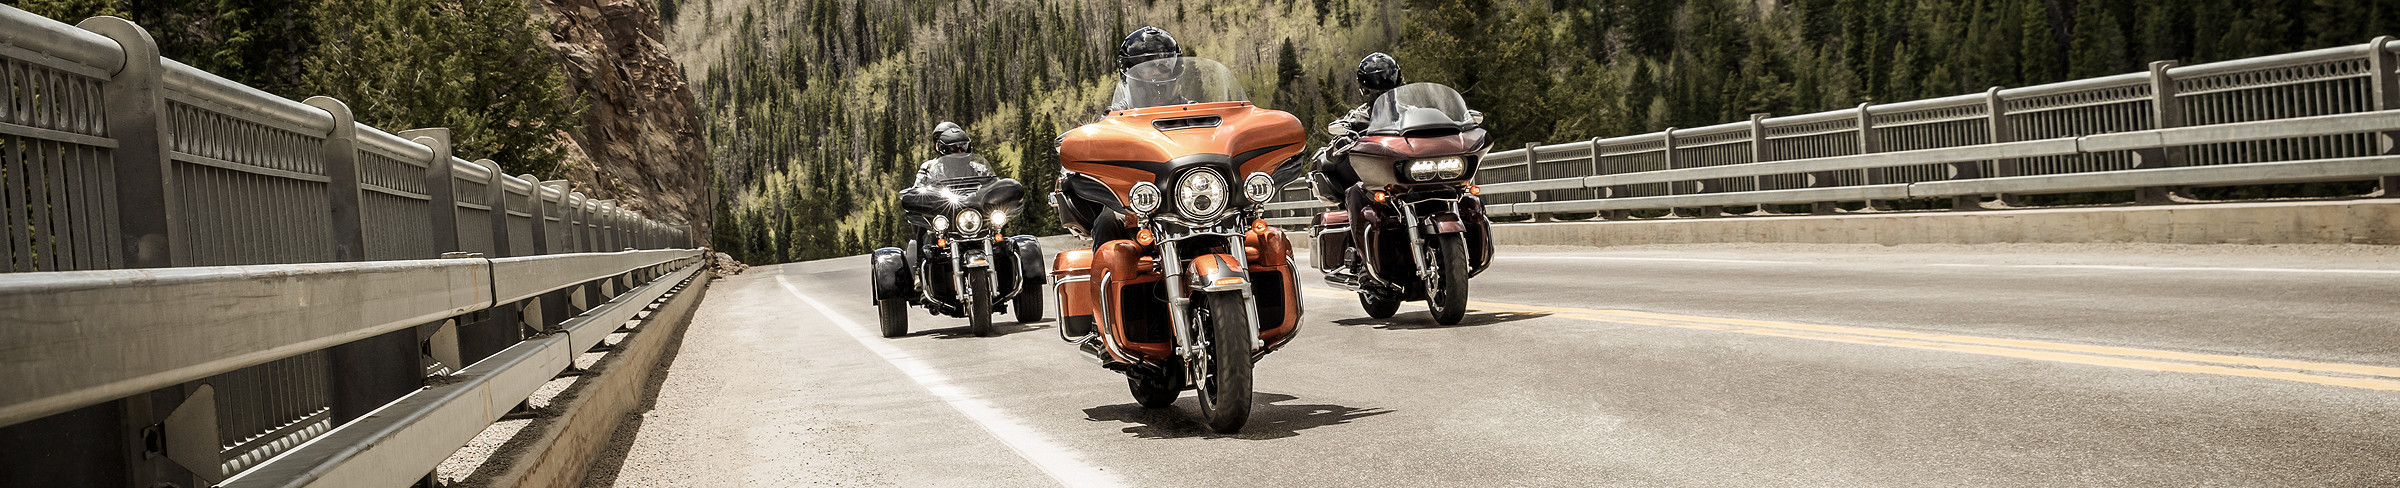 High Country Harley-Davidson® Of Cheyenne Photo Gallery